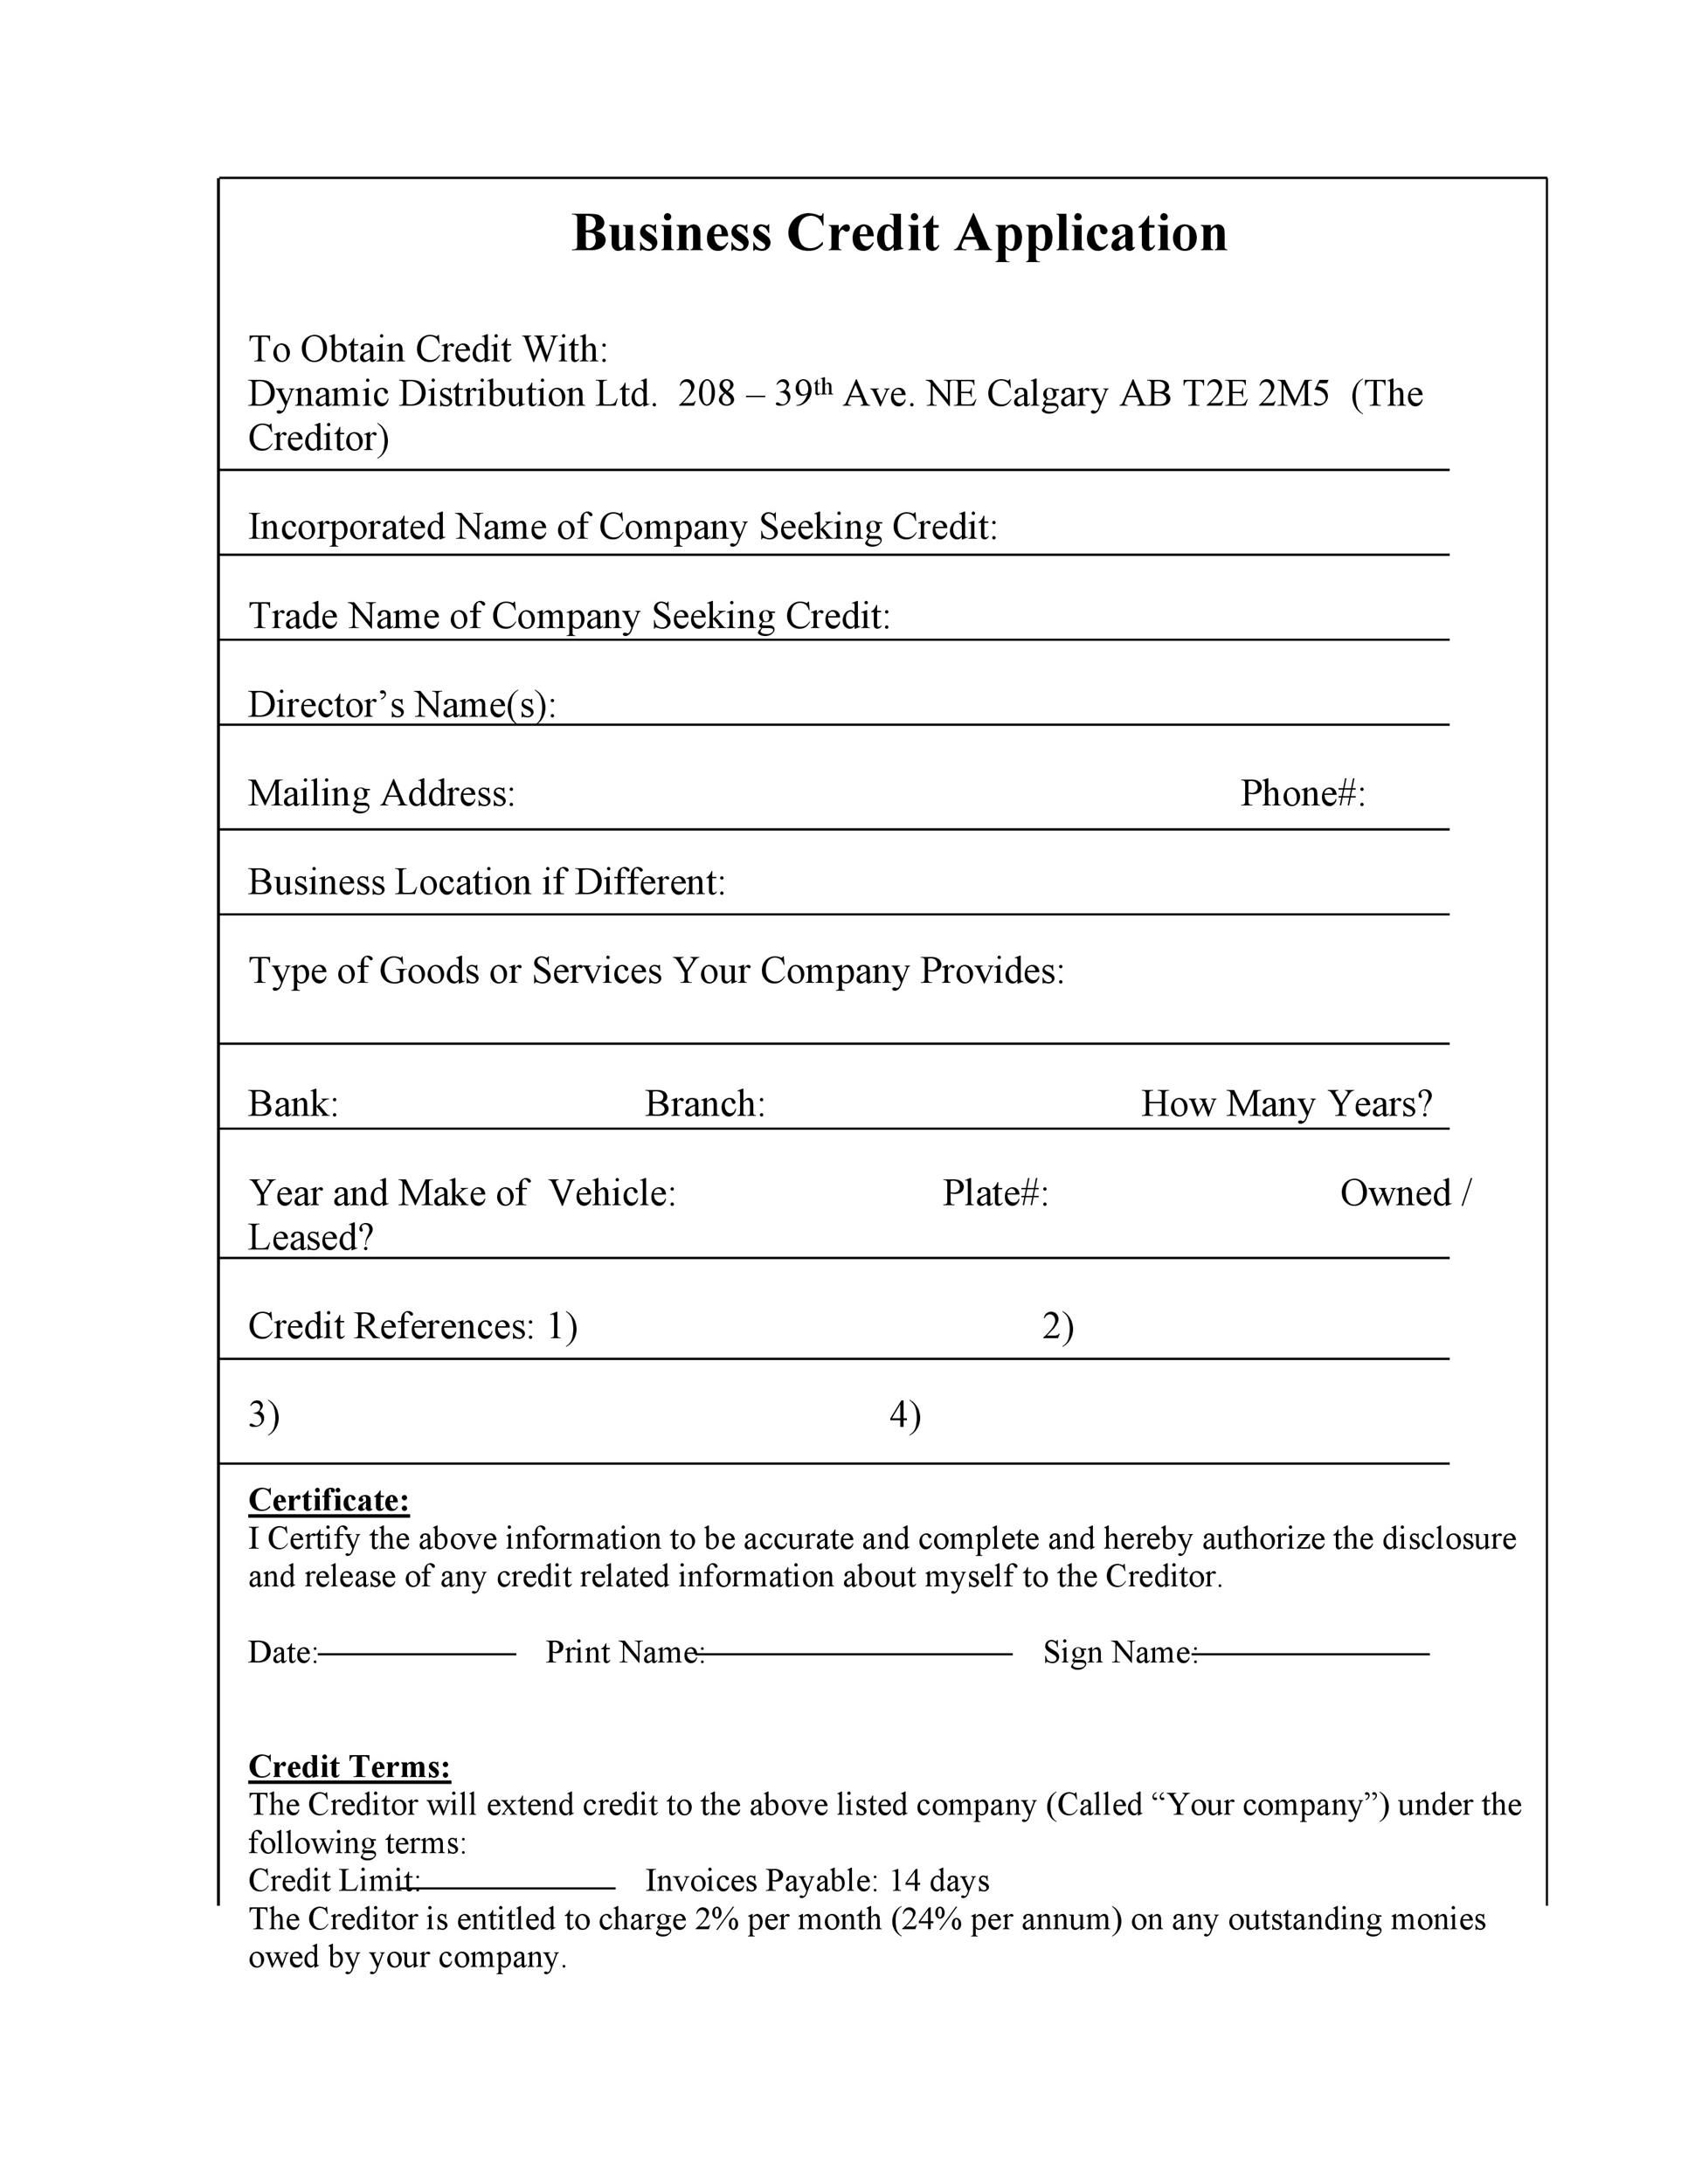 007 Archaicawful Busines Credit Application Form Free Inspiration  TemplateFull